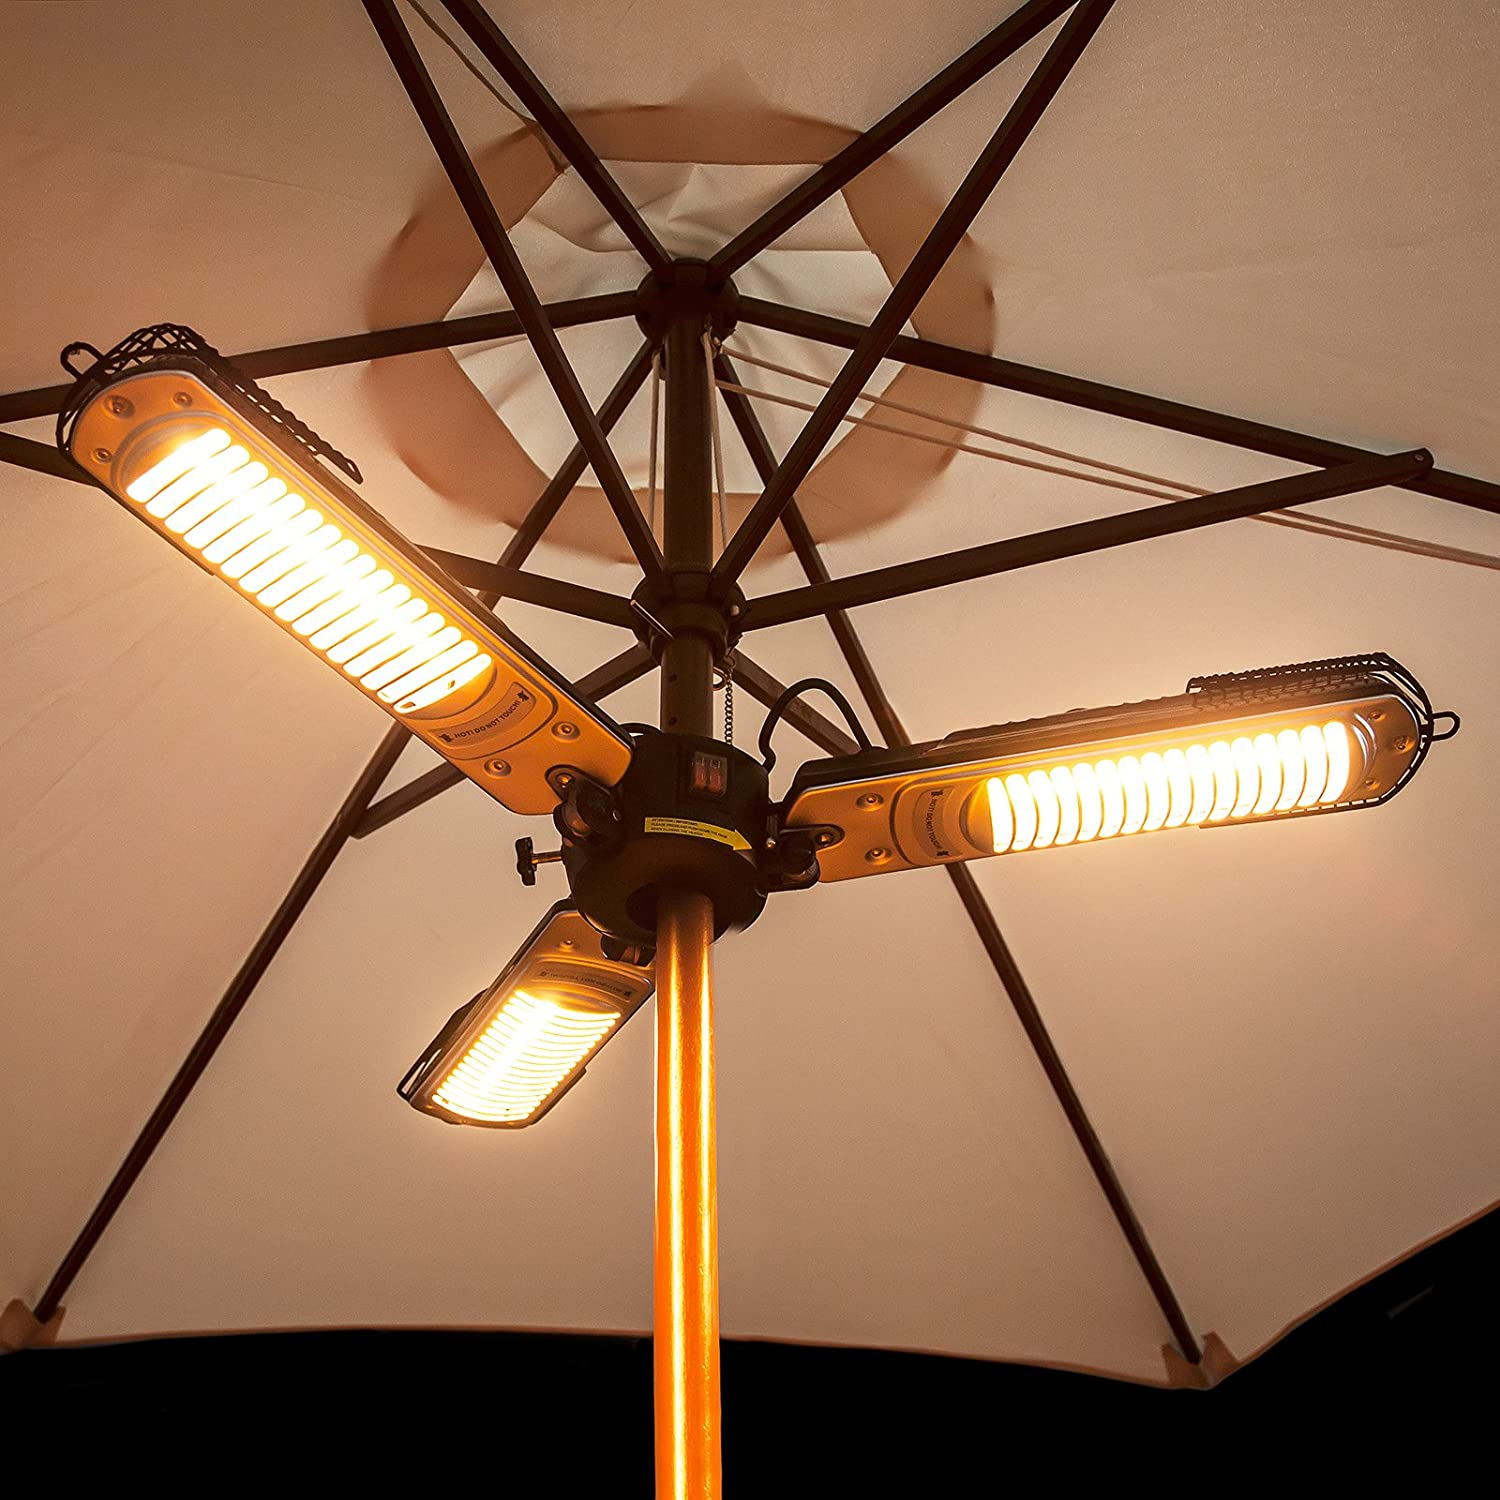 Electric Halogen Parasol Heater - Foldable Arms, 1m Wide Fire Mountain